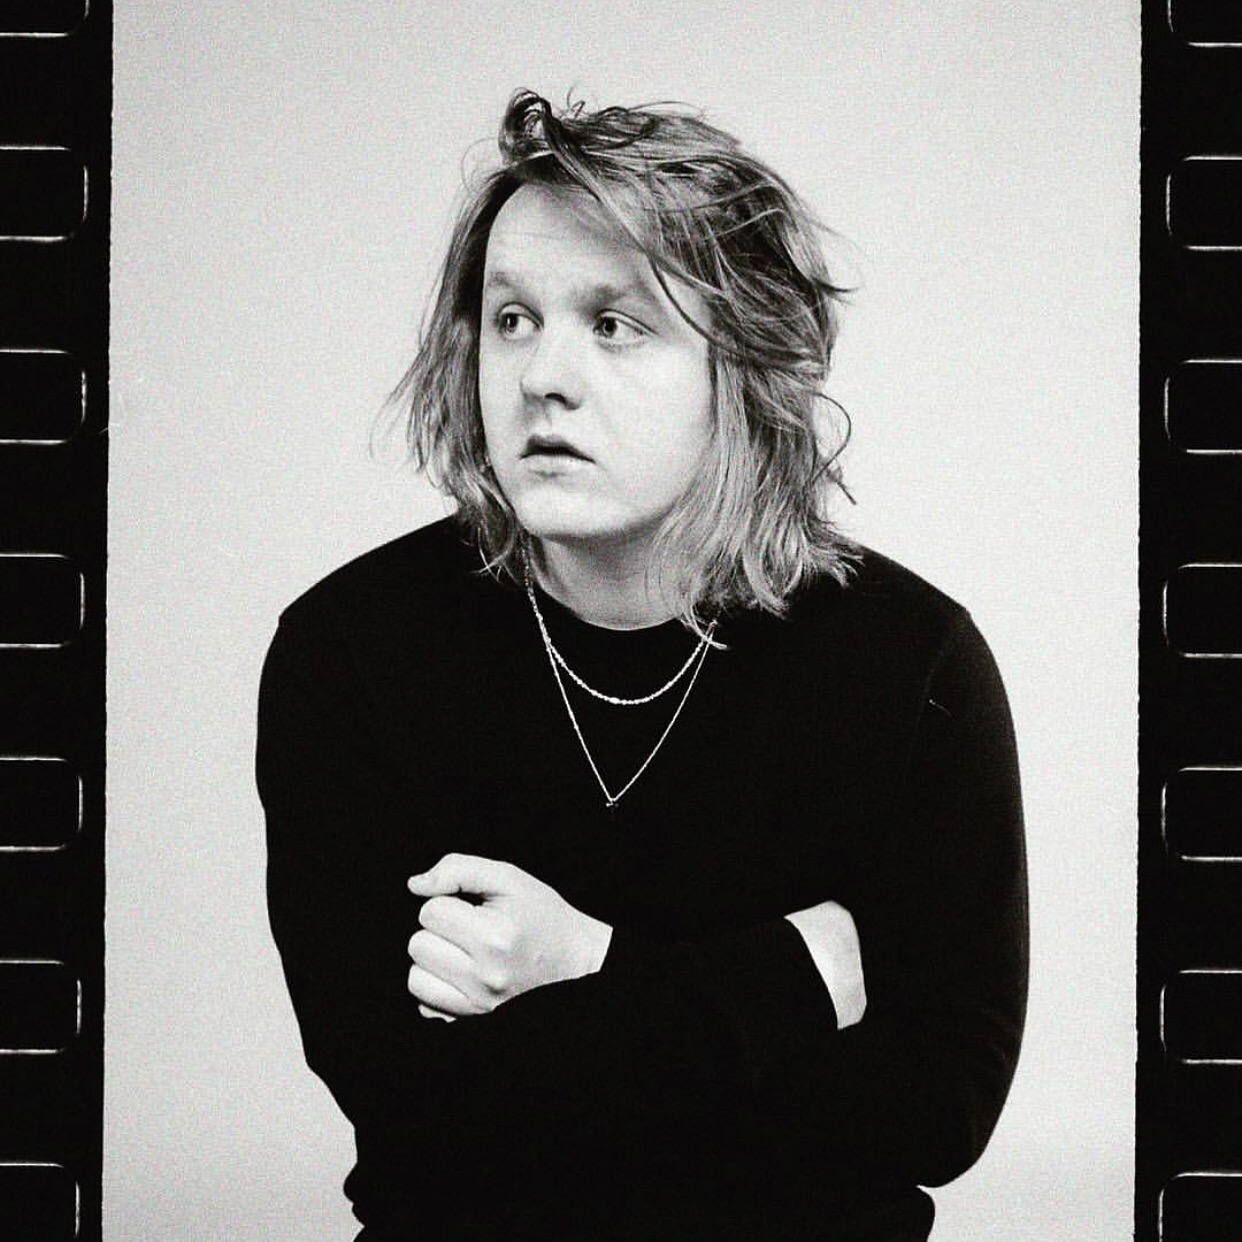 lewis capaldi - photo #6